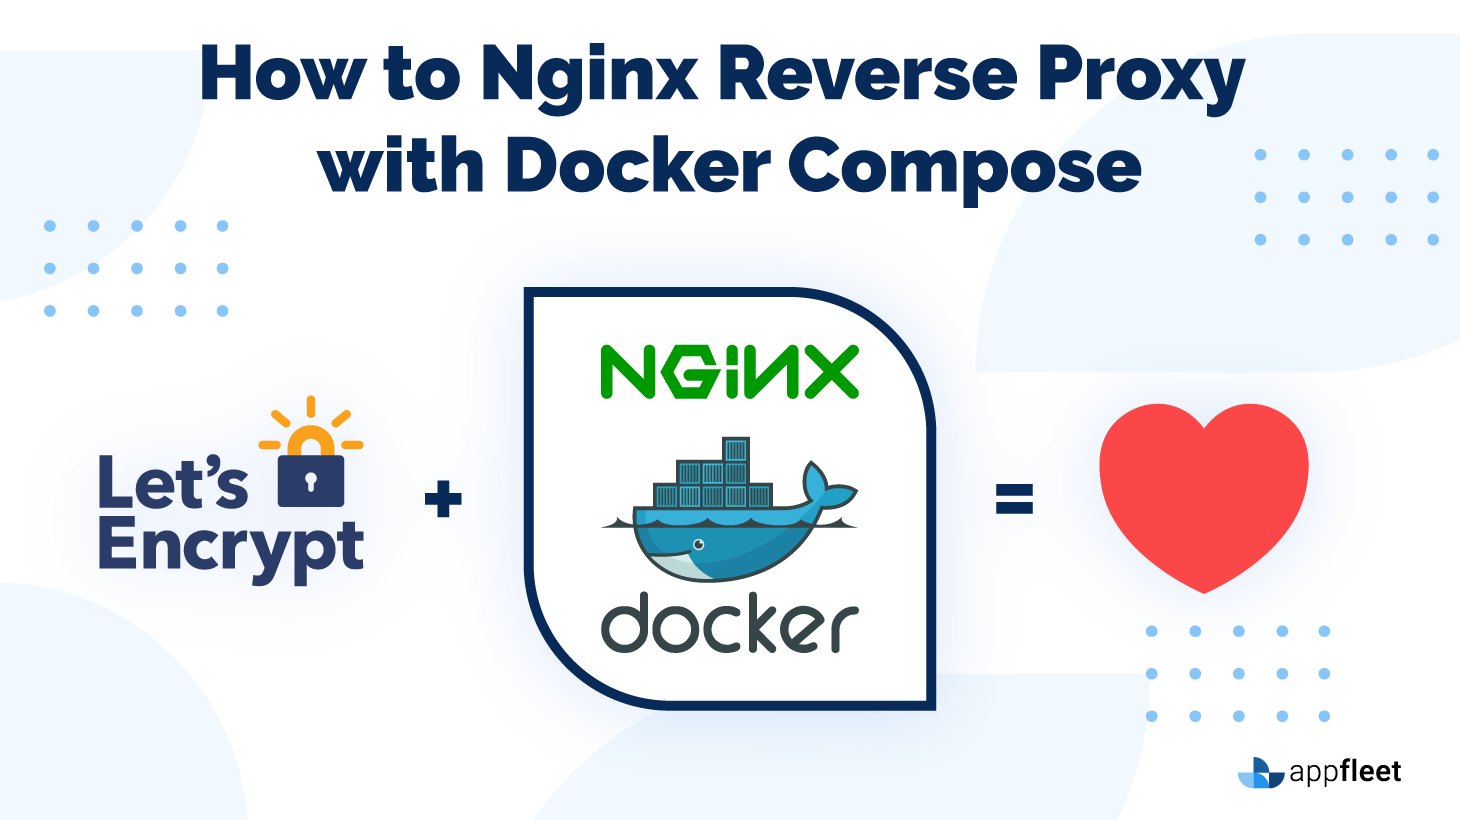 How to Nginx Reverse Proxy with Docker Compose